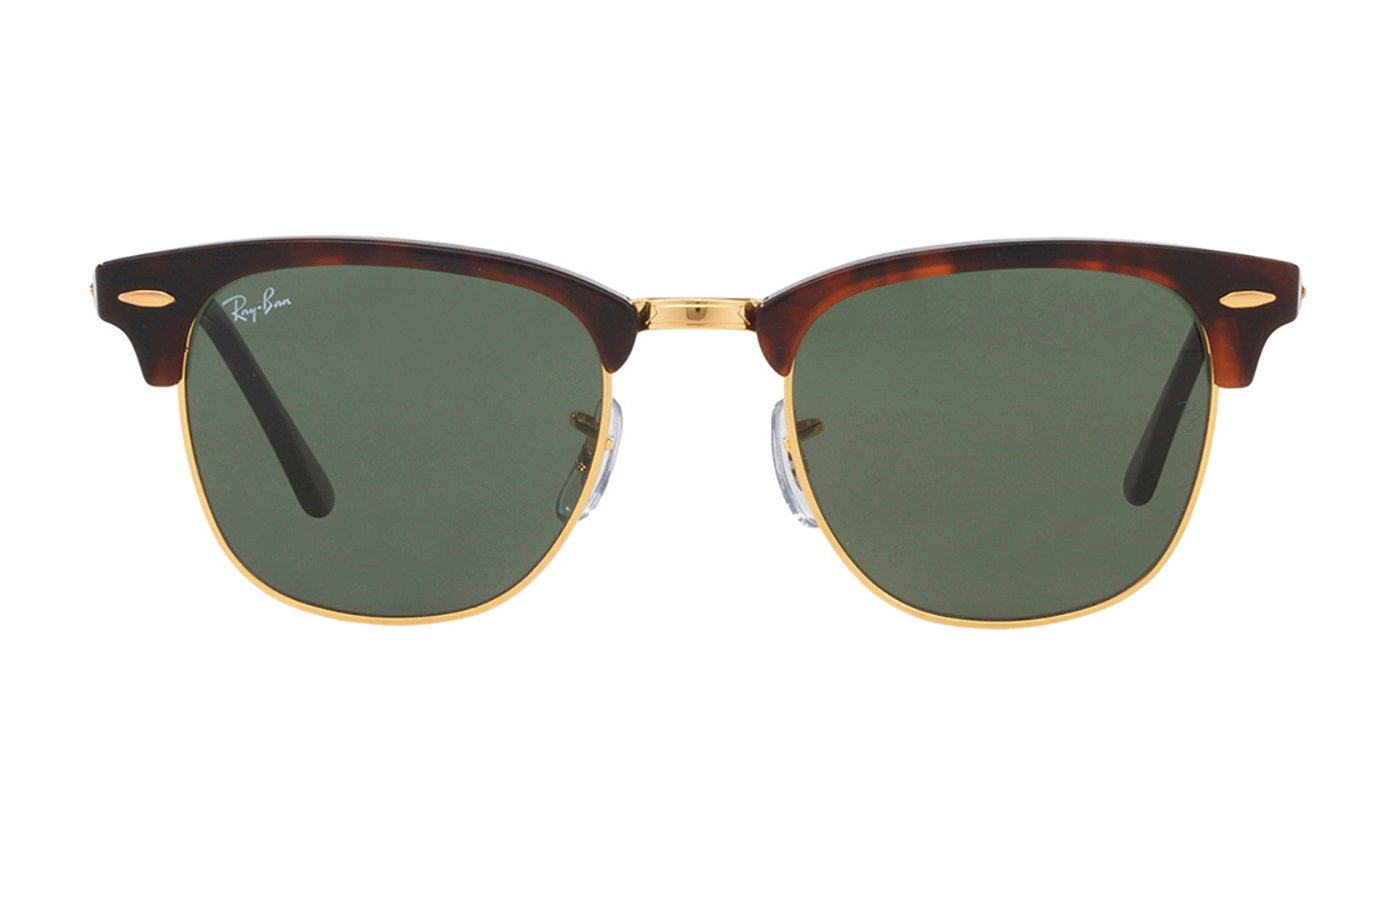 RAY-BAN CLUBMASTER 0RB3016 51 W0366 MOCK TORTOISE/ ARISTA